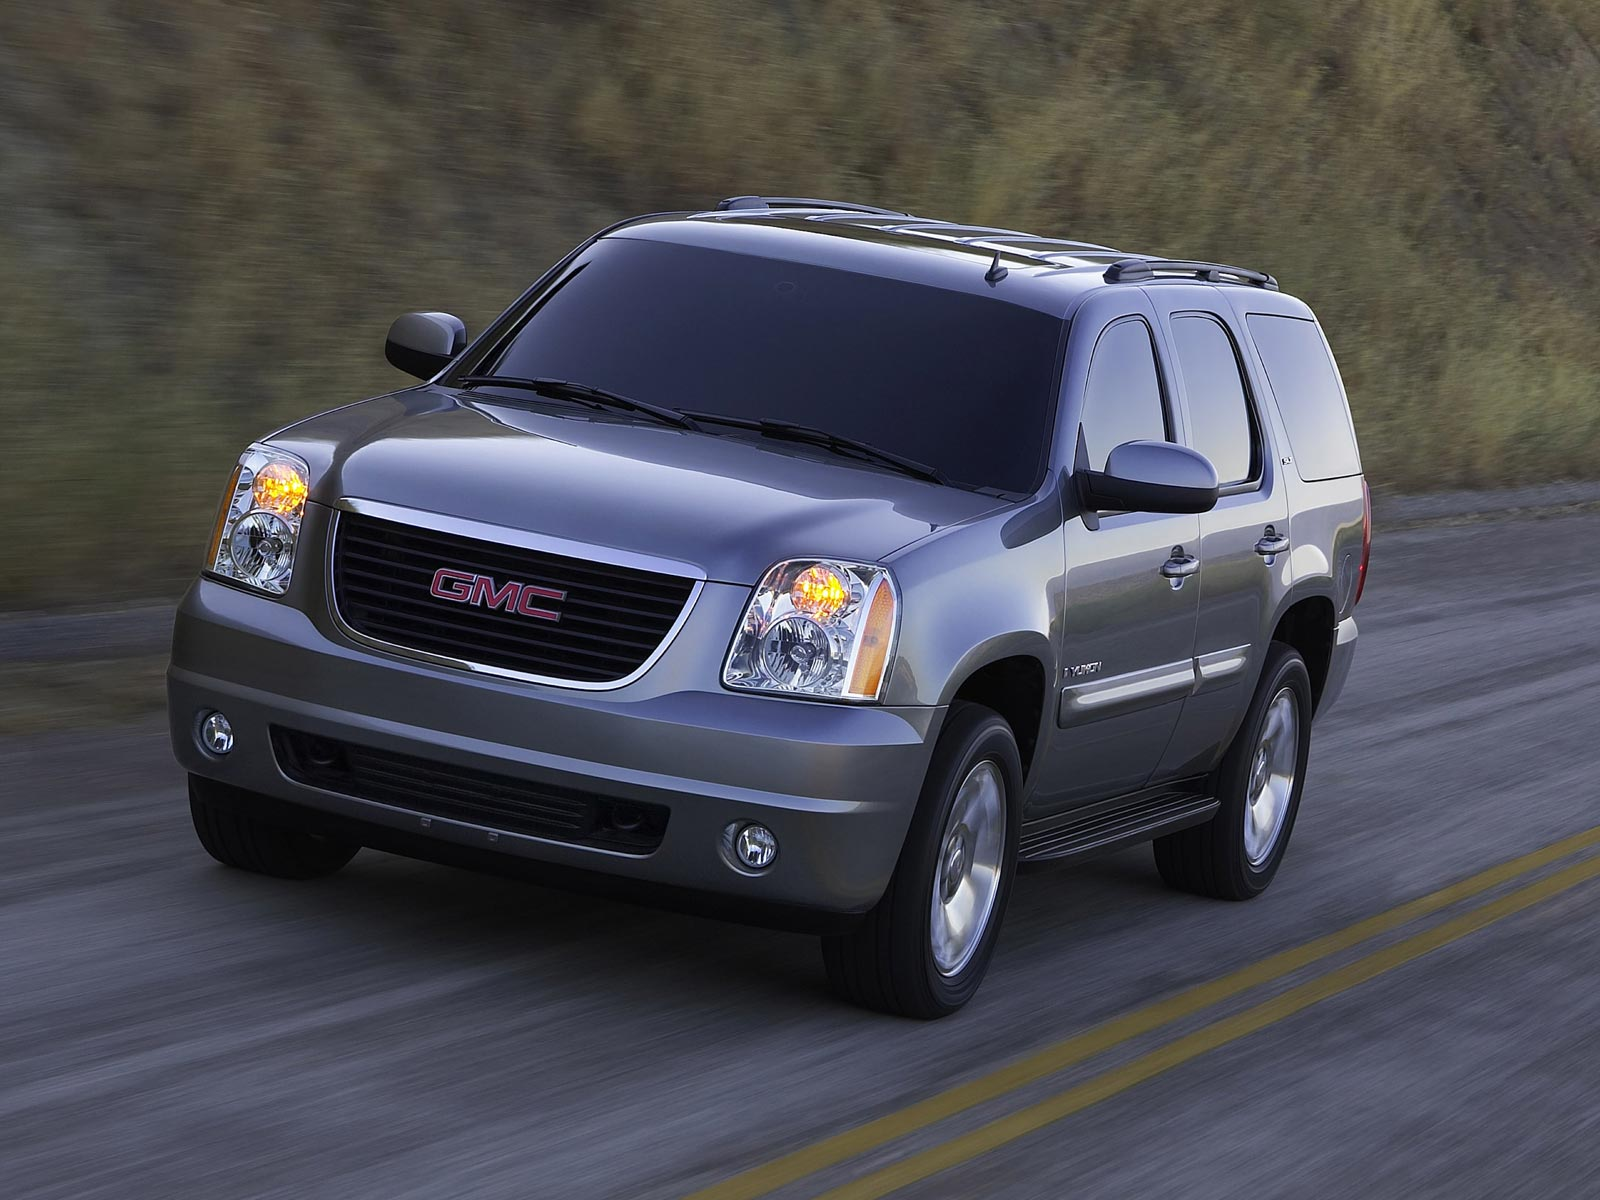 2019 GMC Yukon photo - 3